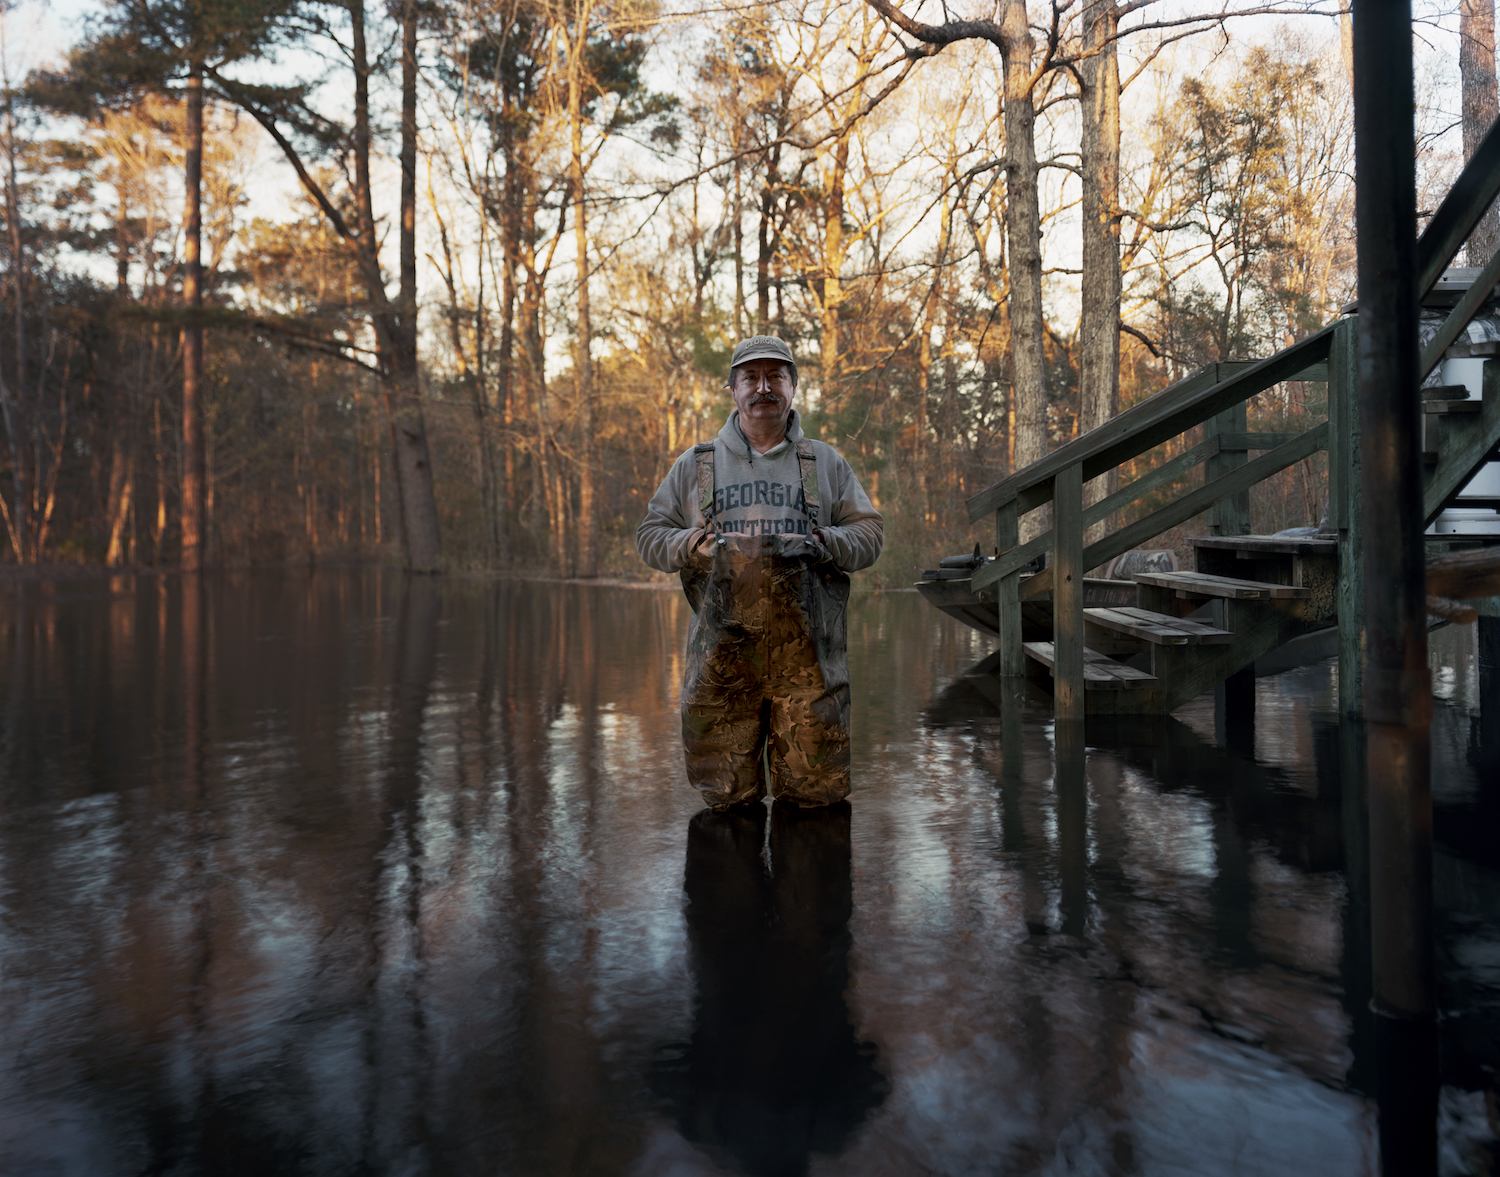 Jody in the driveway of his house during a flood  Effingham County